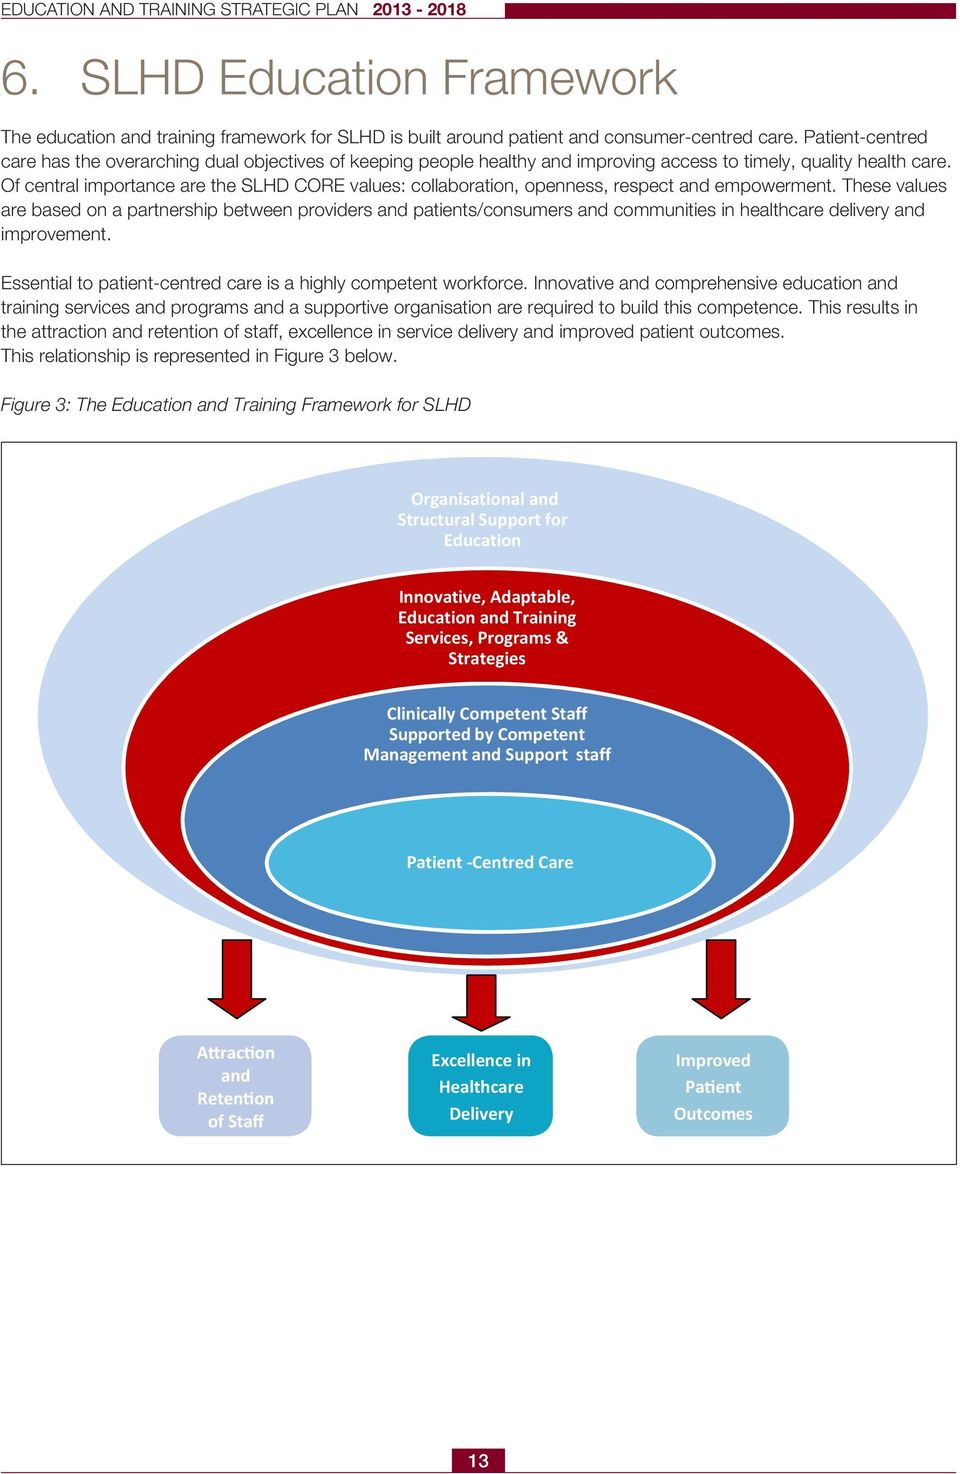 consumer-centred care. Patient-centred care.